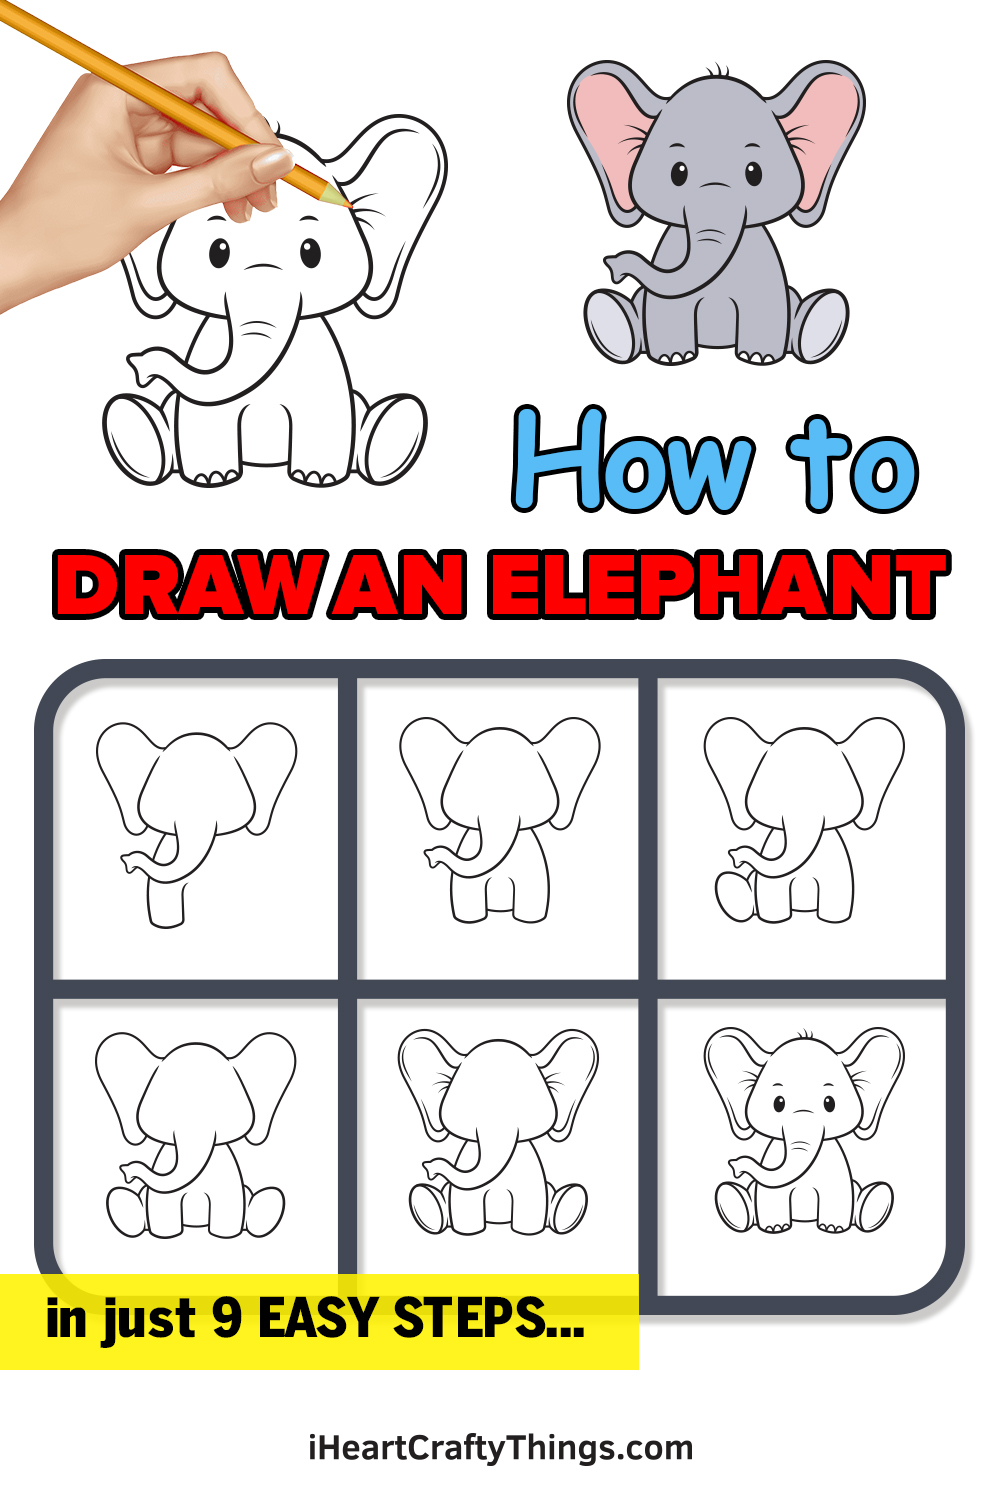 How to Draw an Elephant in 9 Easy Steps